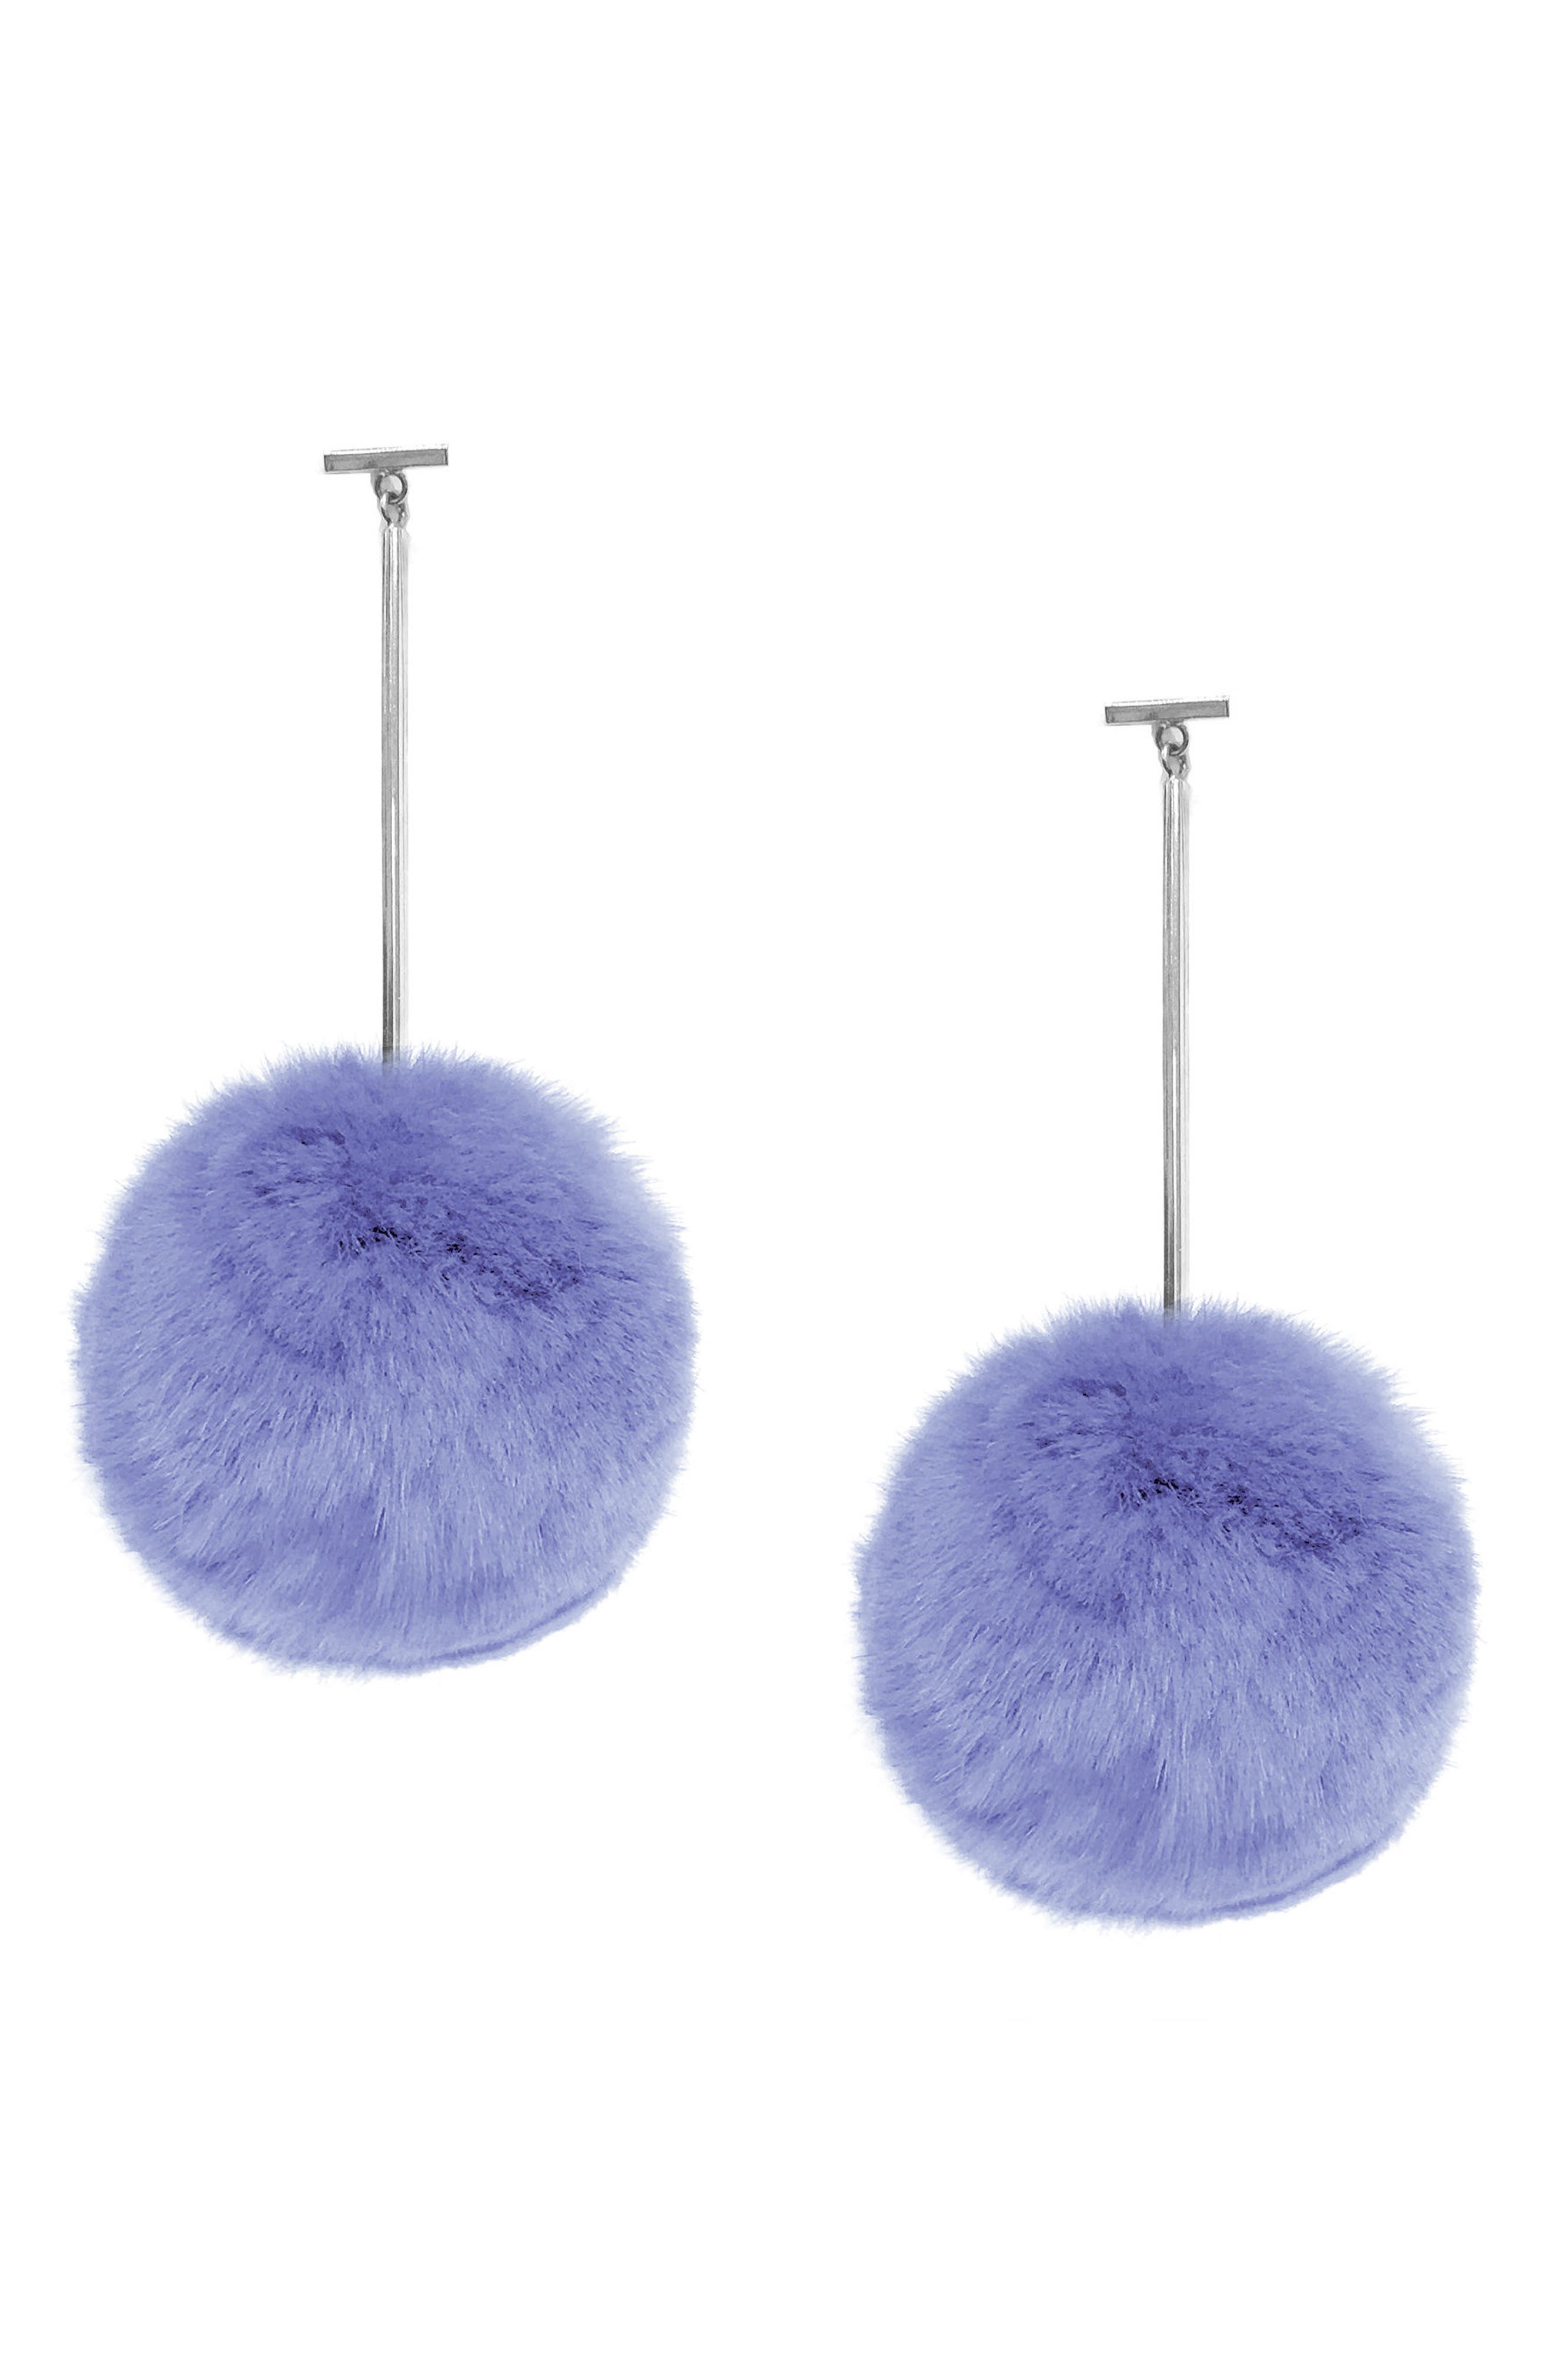 Pompom Drop Earrings,                             Main thumbnail 1, color,                             Silver/ Ice Blue